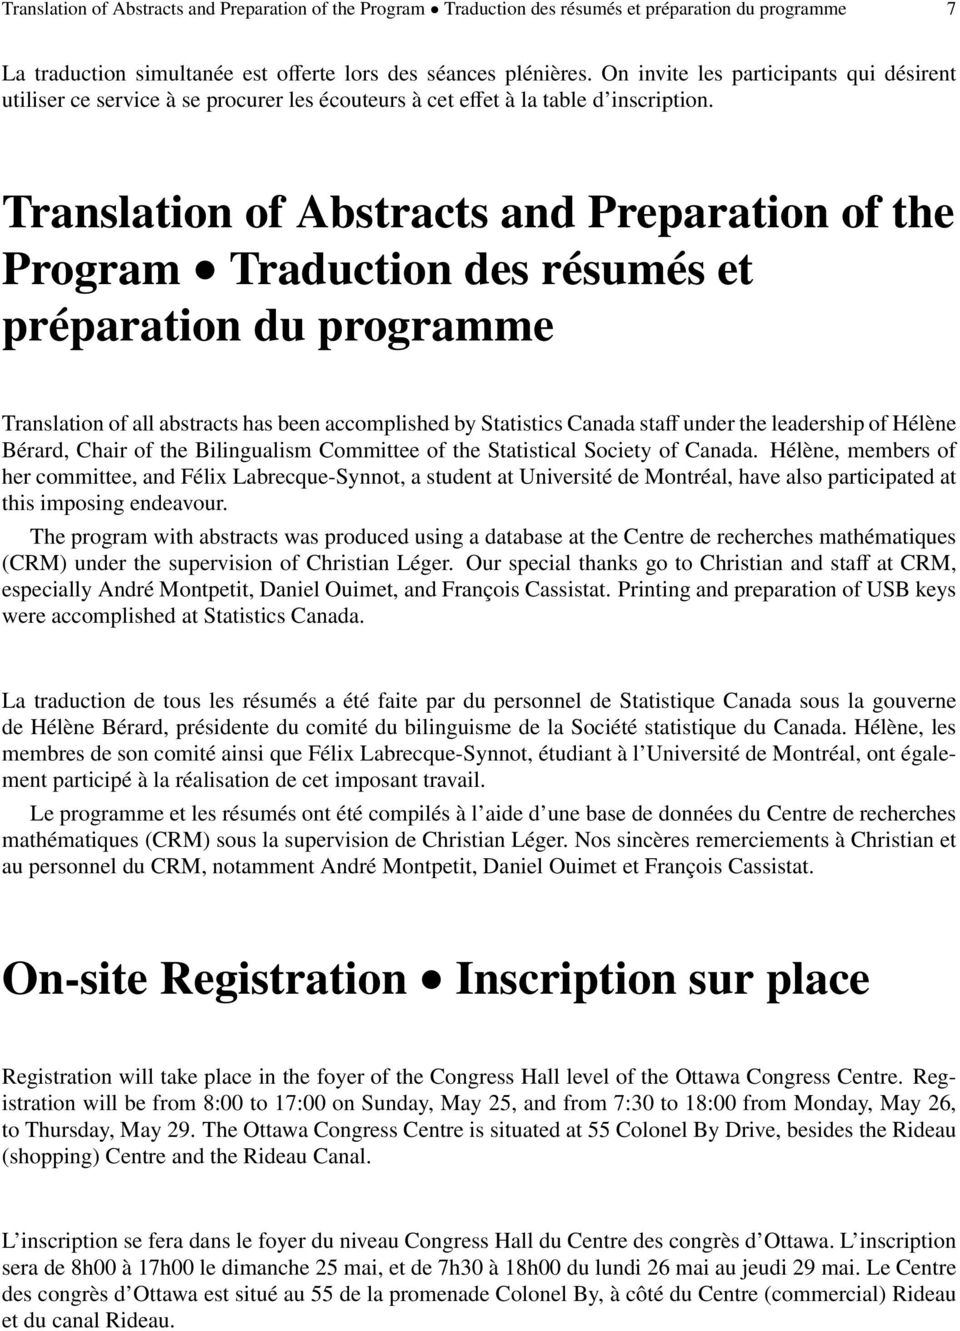 Translation of Abstracts and Preparation of the Program Traduction des résumés et préparation du programme Translation of all abstracts has been accomplished by Statistics Canada staff under the